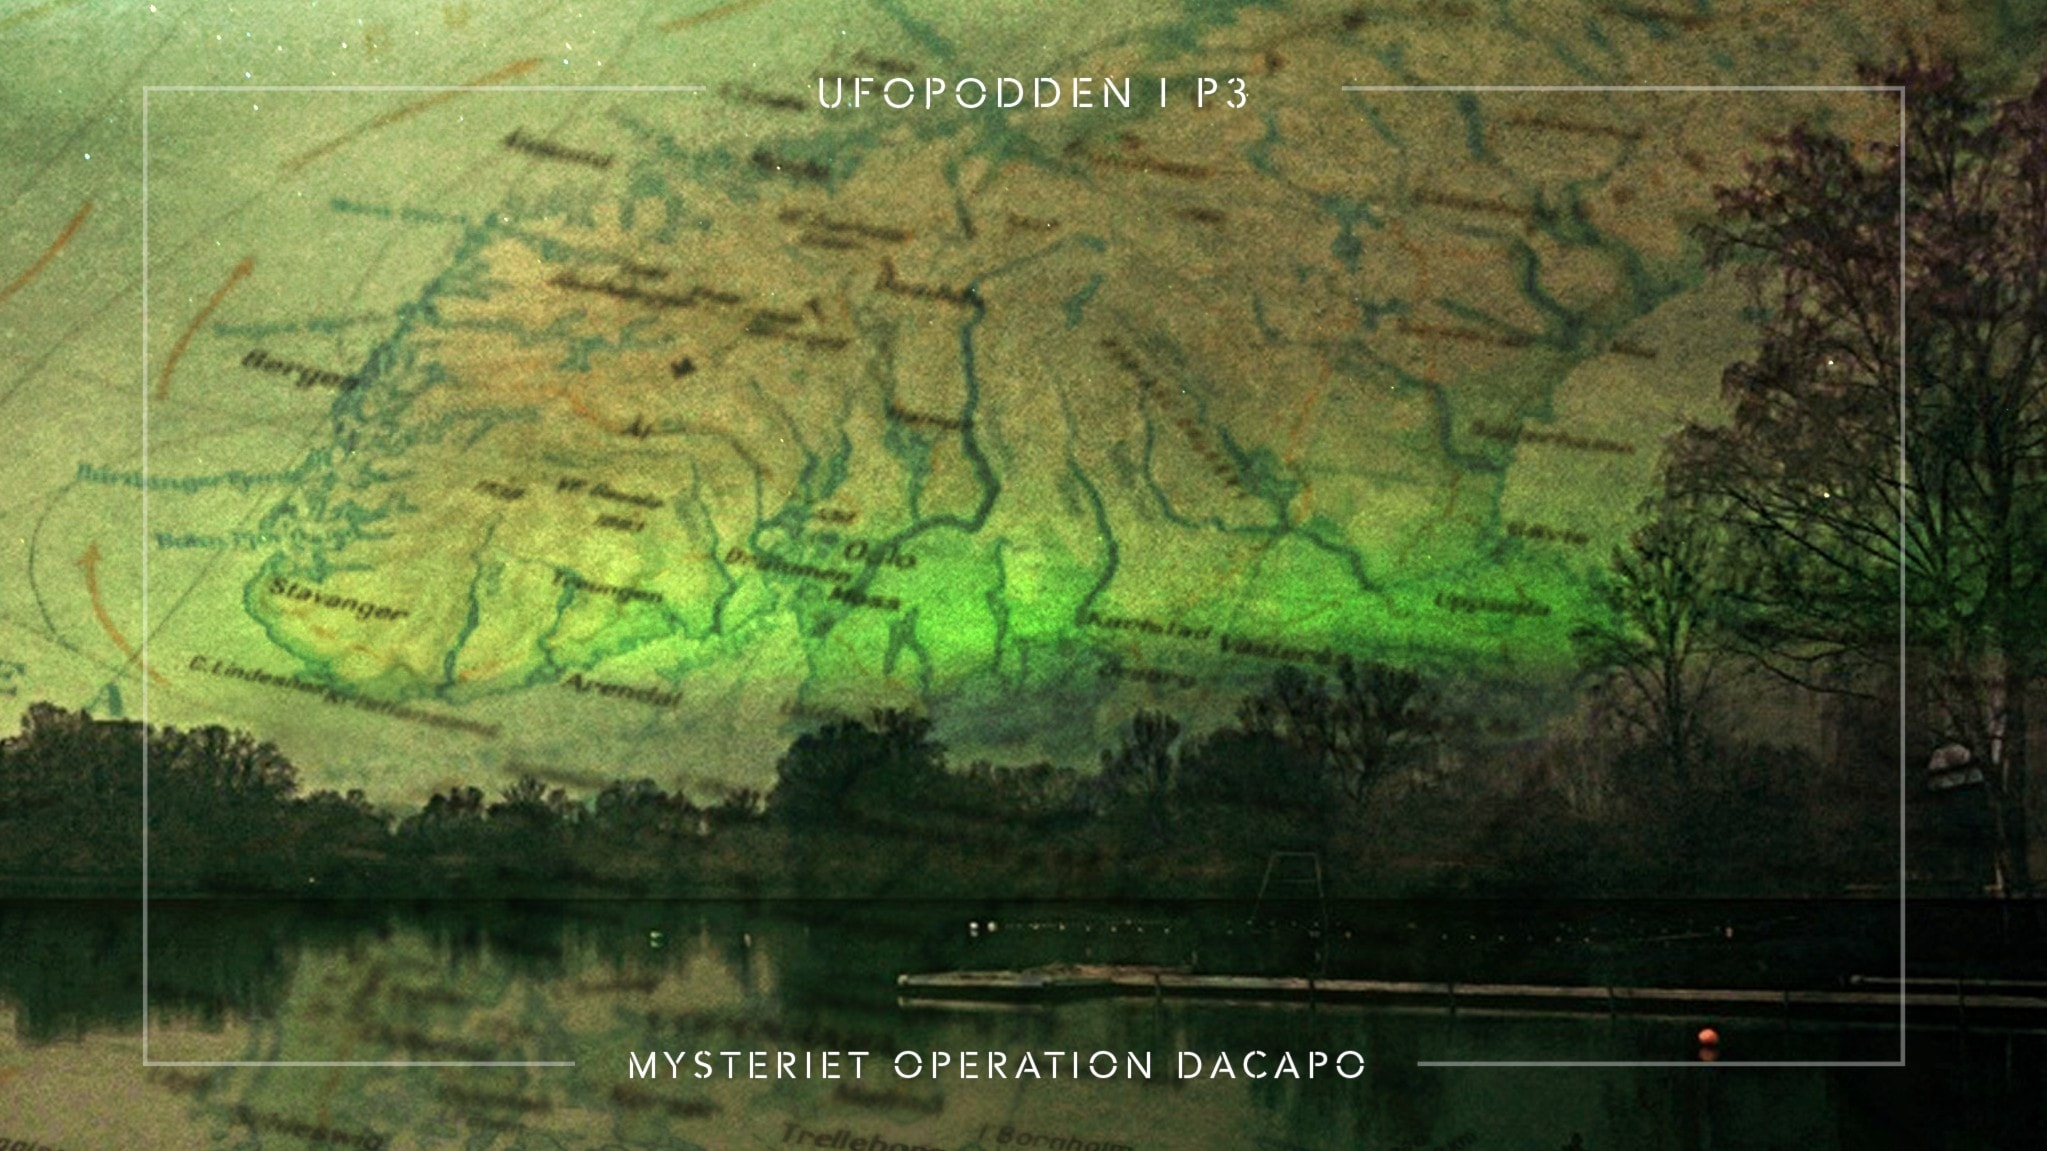 Mysteriet Operation Dacapo